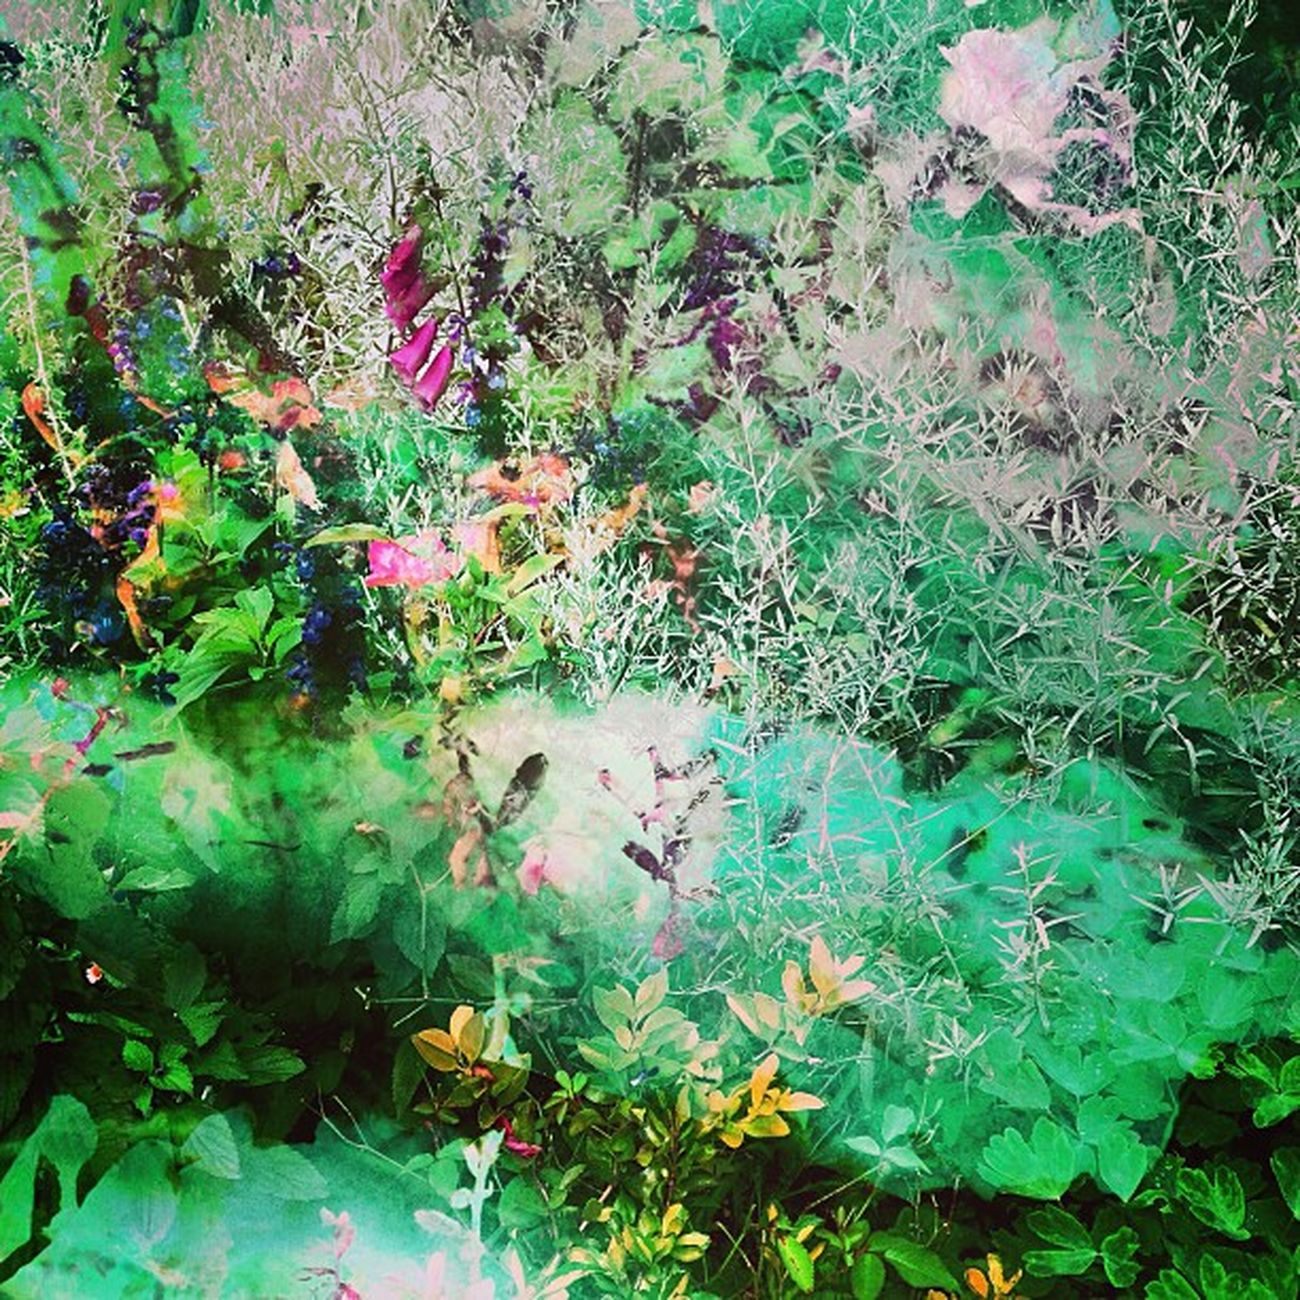 Vaguely Garden Side Deadlydivas_edits Ig_outkast Gang_family Ig_one Greenfriday Edit2gether Unitedbyedit Stunning_pics7 Mobileartistry Icatching Instauno Femme_elite Igsg Onlythe_femme Bd Hdr_femme Master_pics Weareinheaven Ig_captures Ig_artgallery Editsrus Bestinstagramart Instamasters Deadlydivas